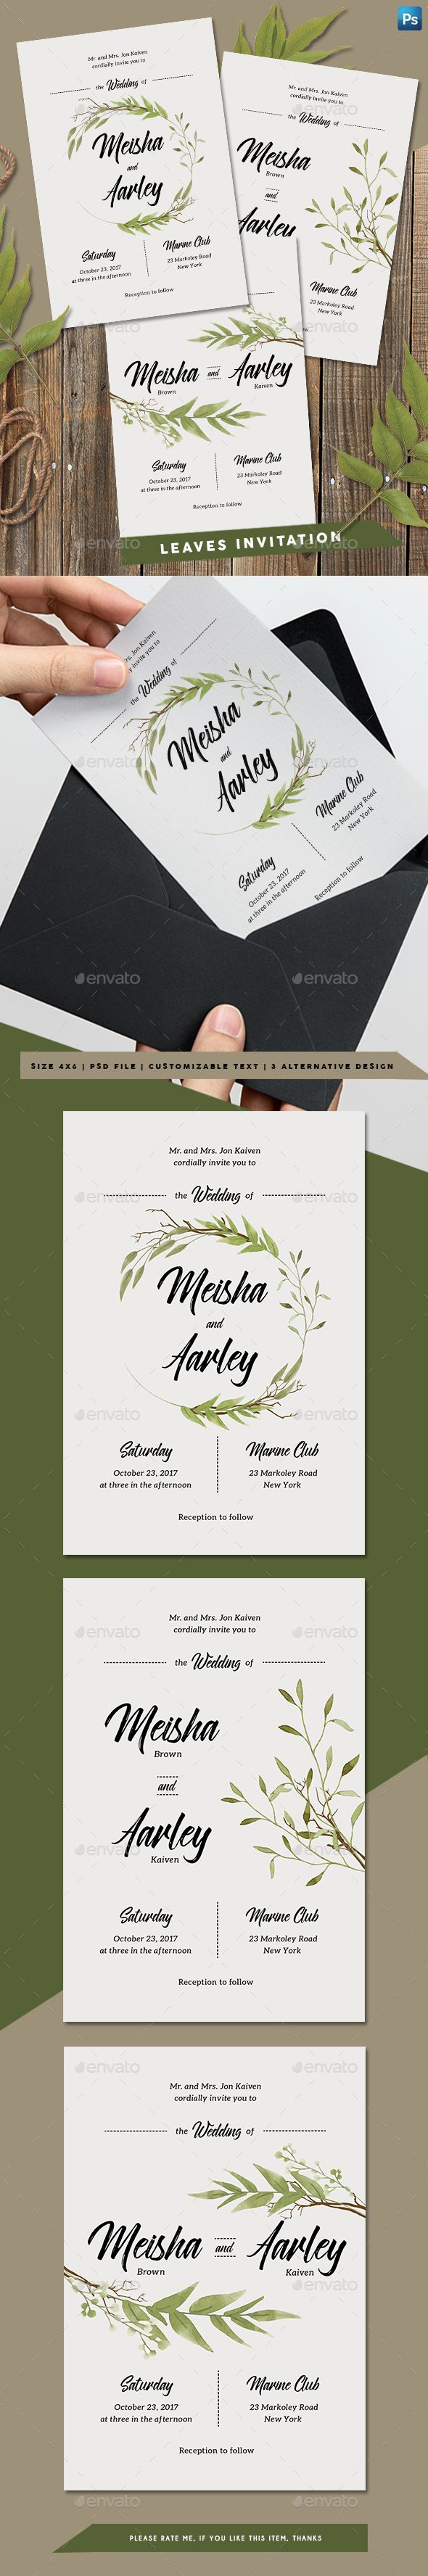 wedding invitation design psd%0A Leaves Invitation  Invitation Card DesignWedding